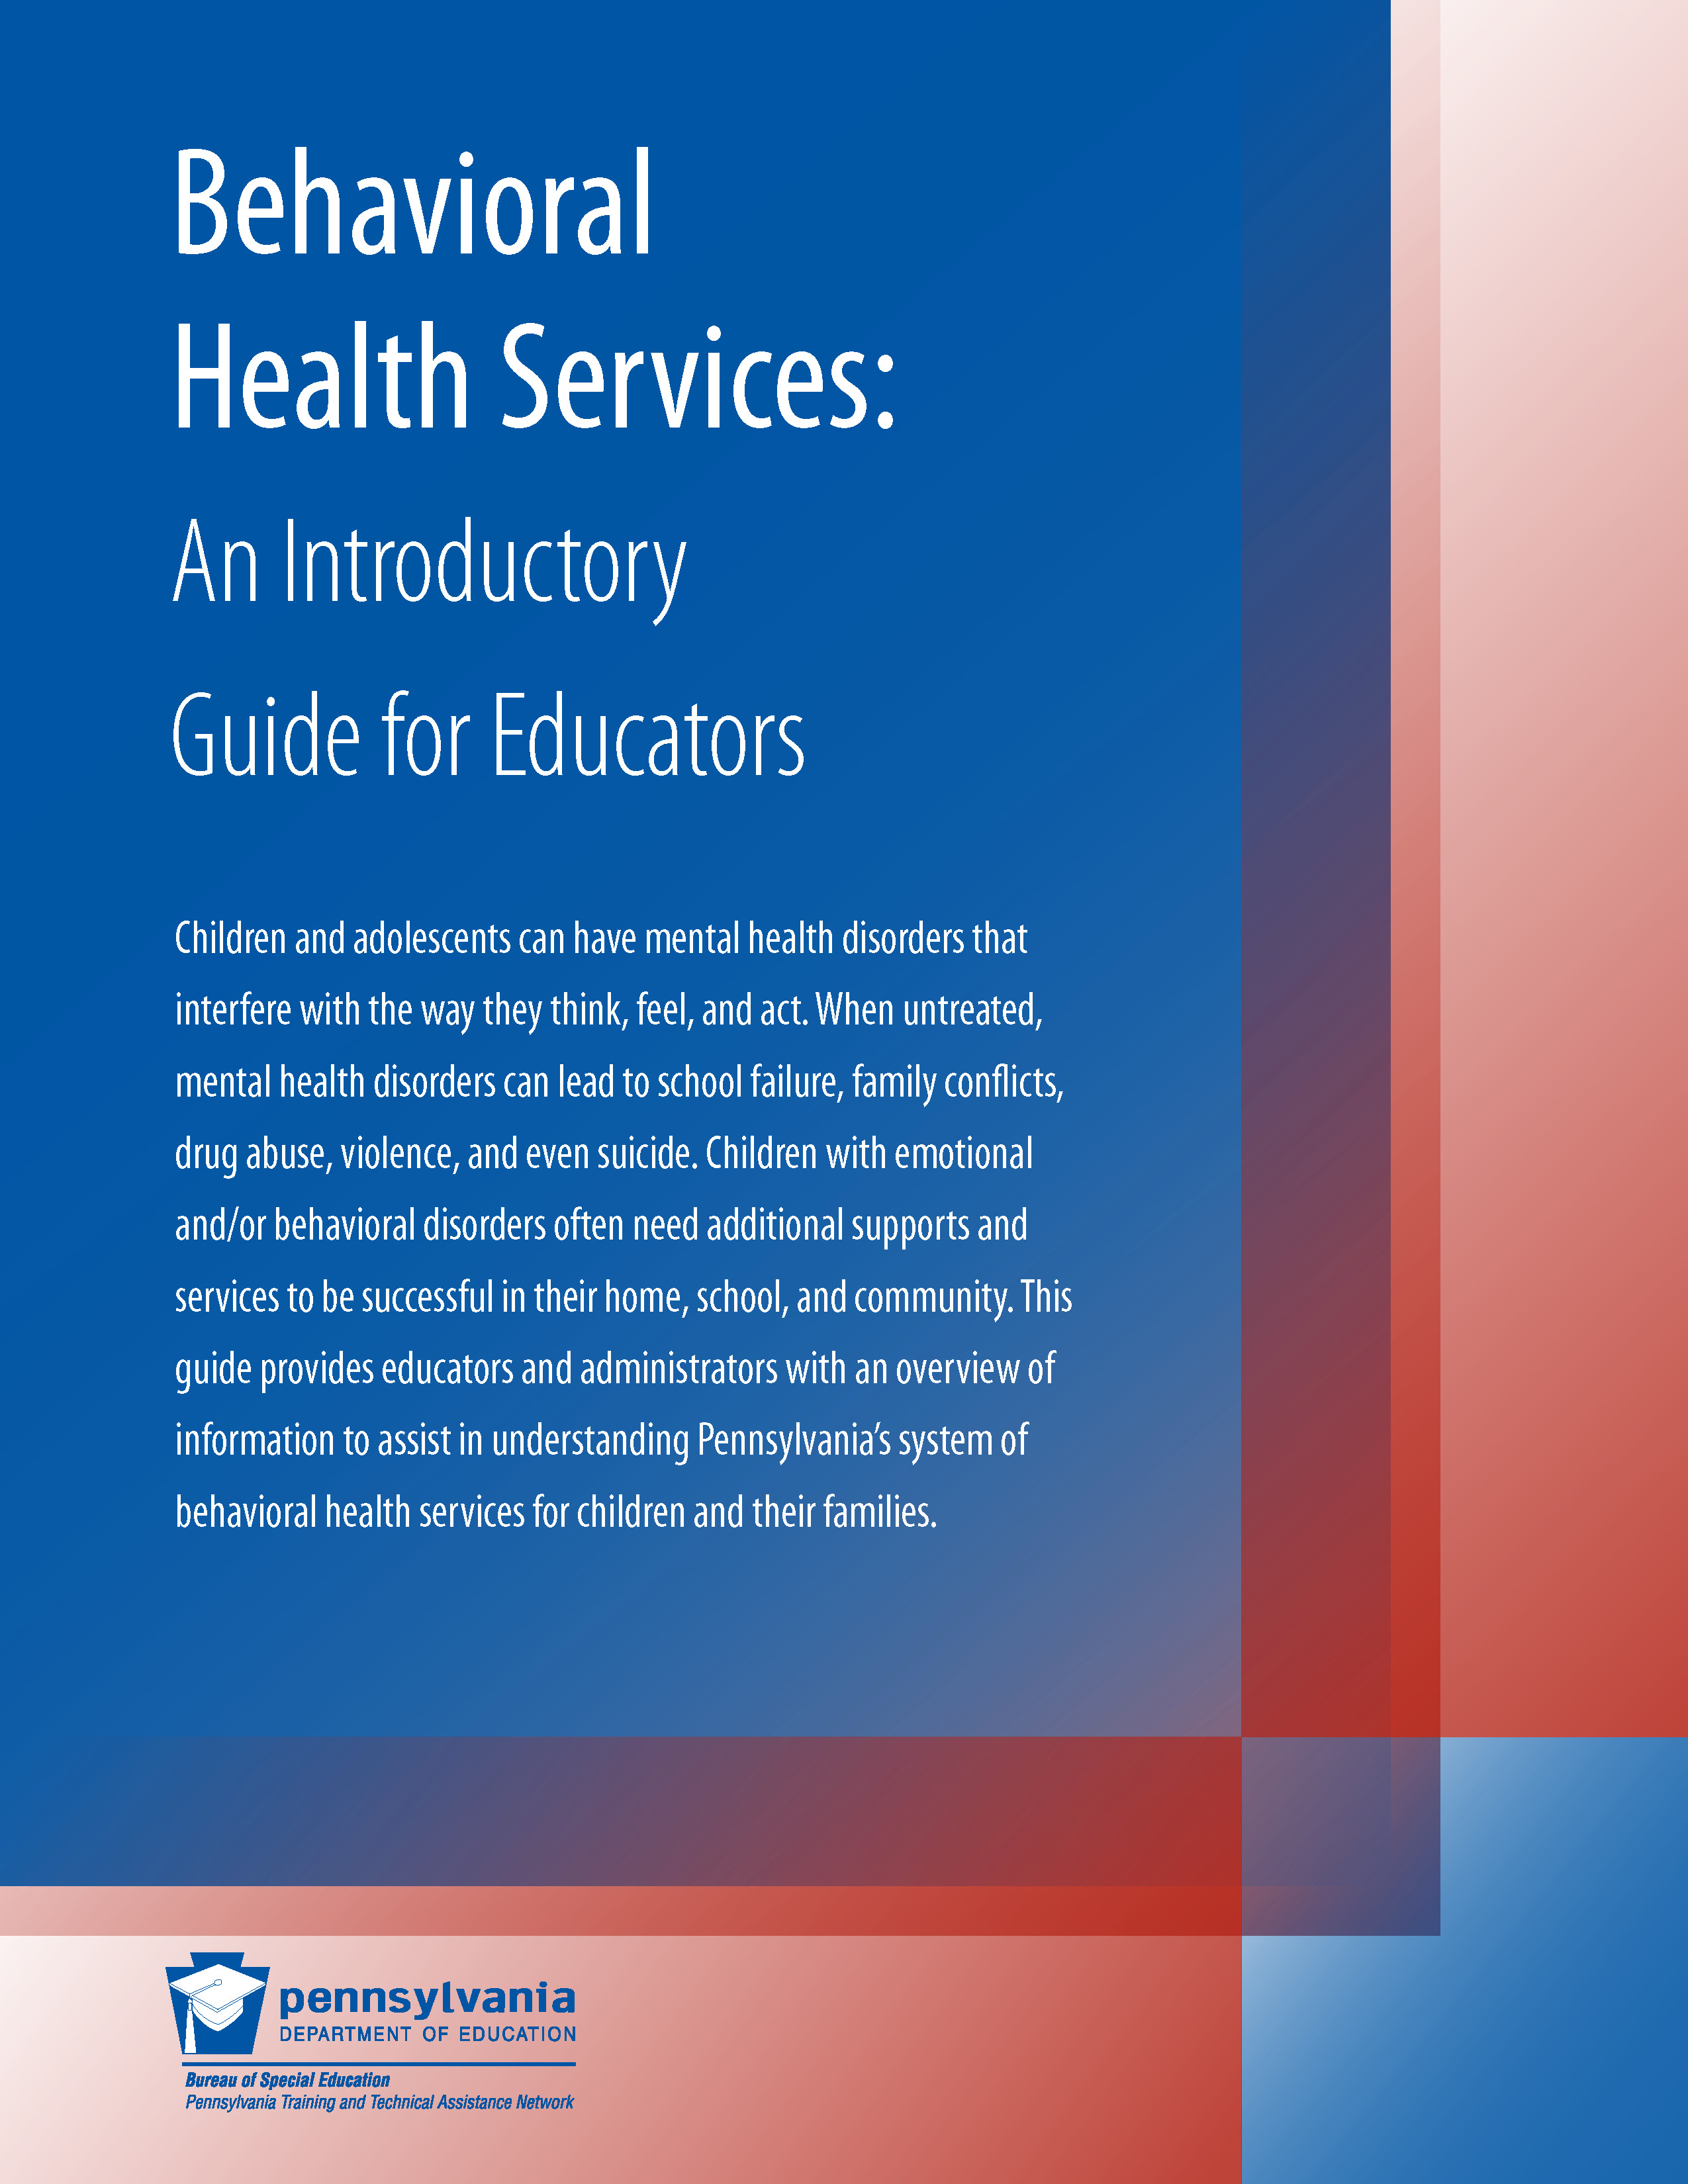 Behavioral Health Services: An Introductory Guide for Educators